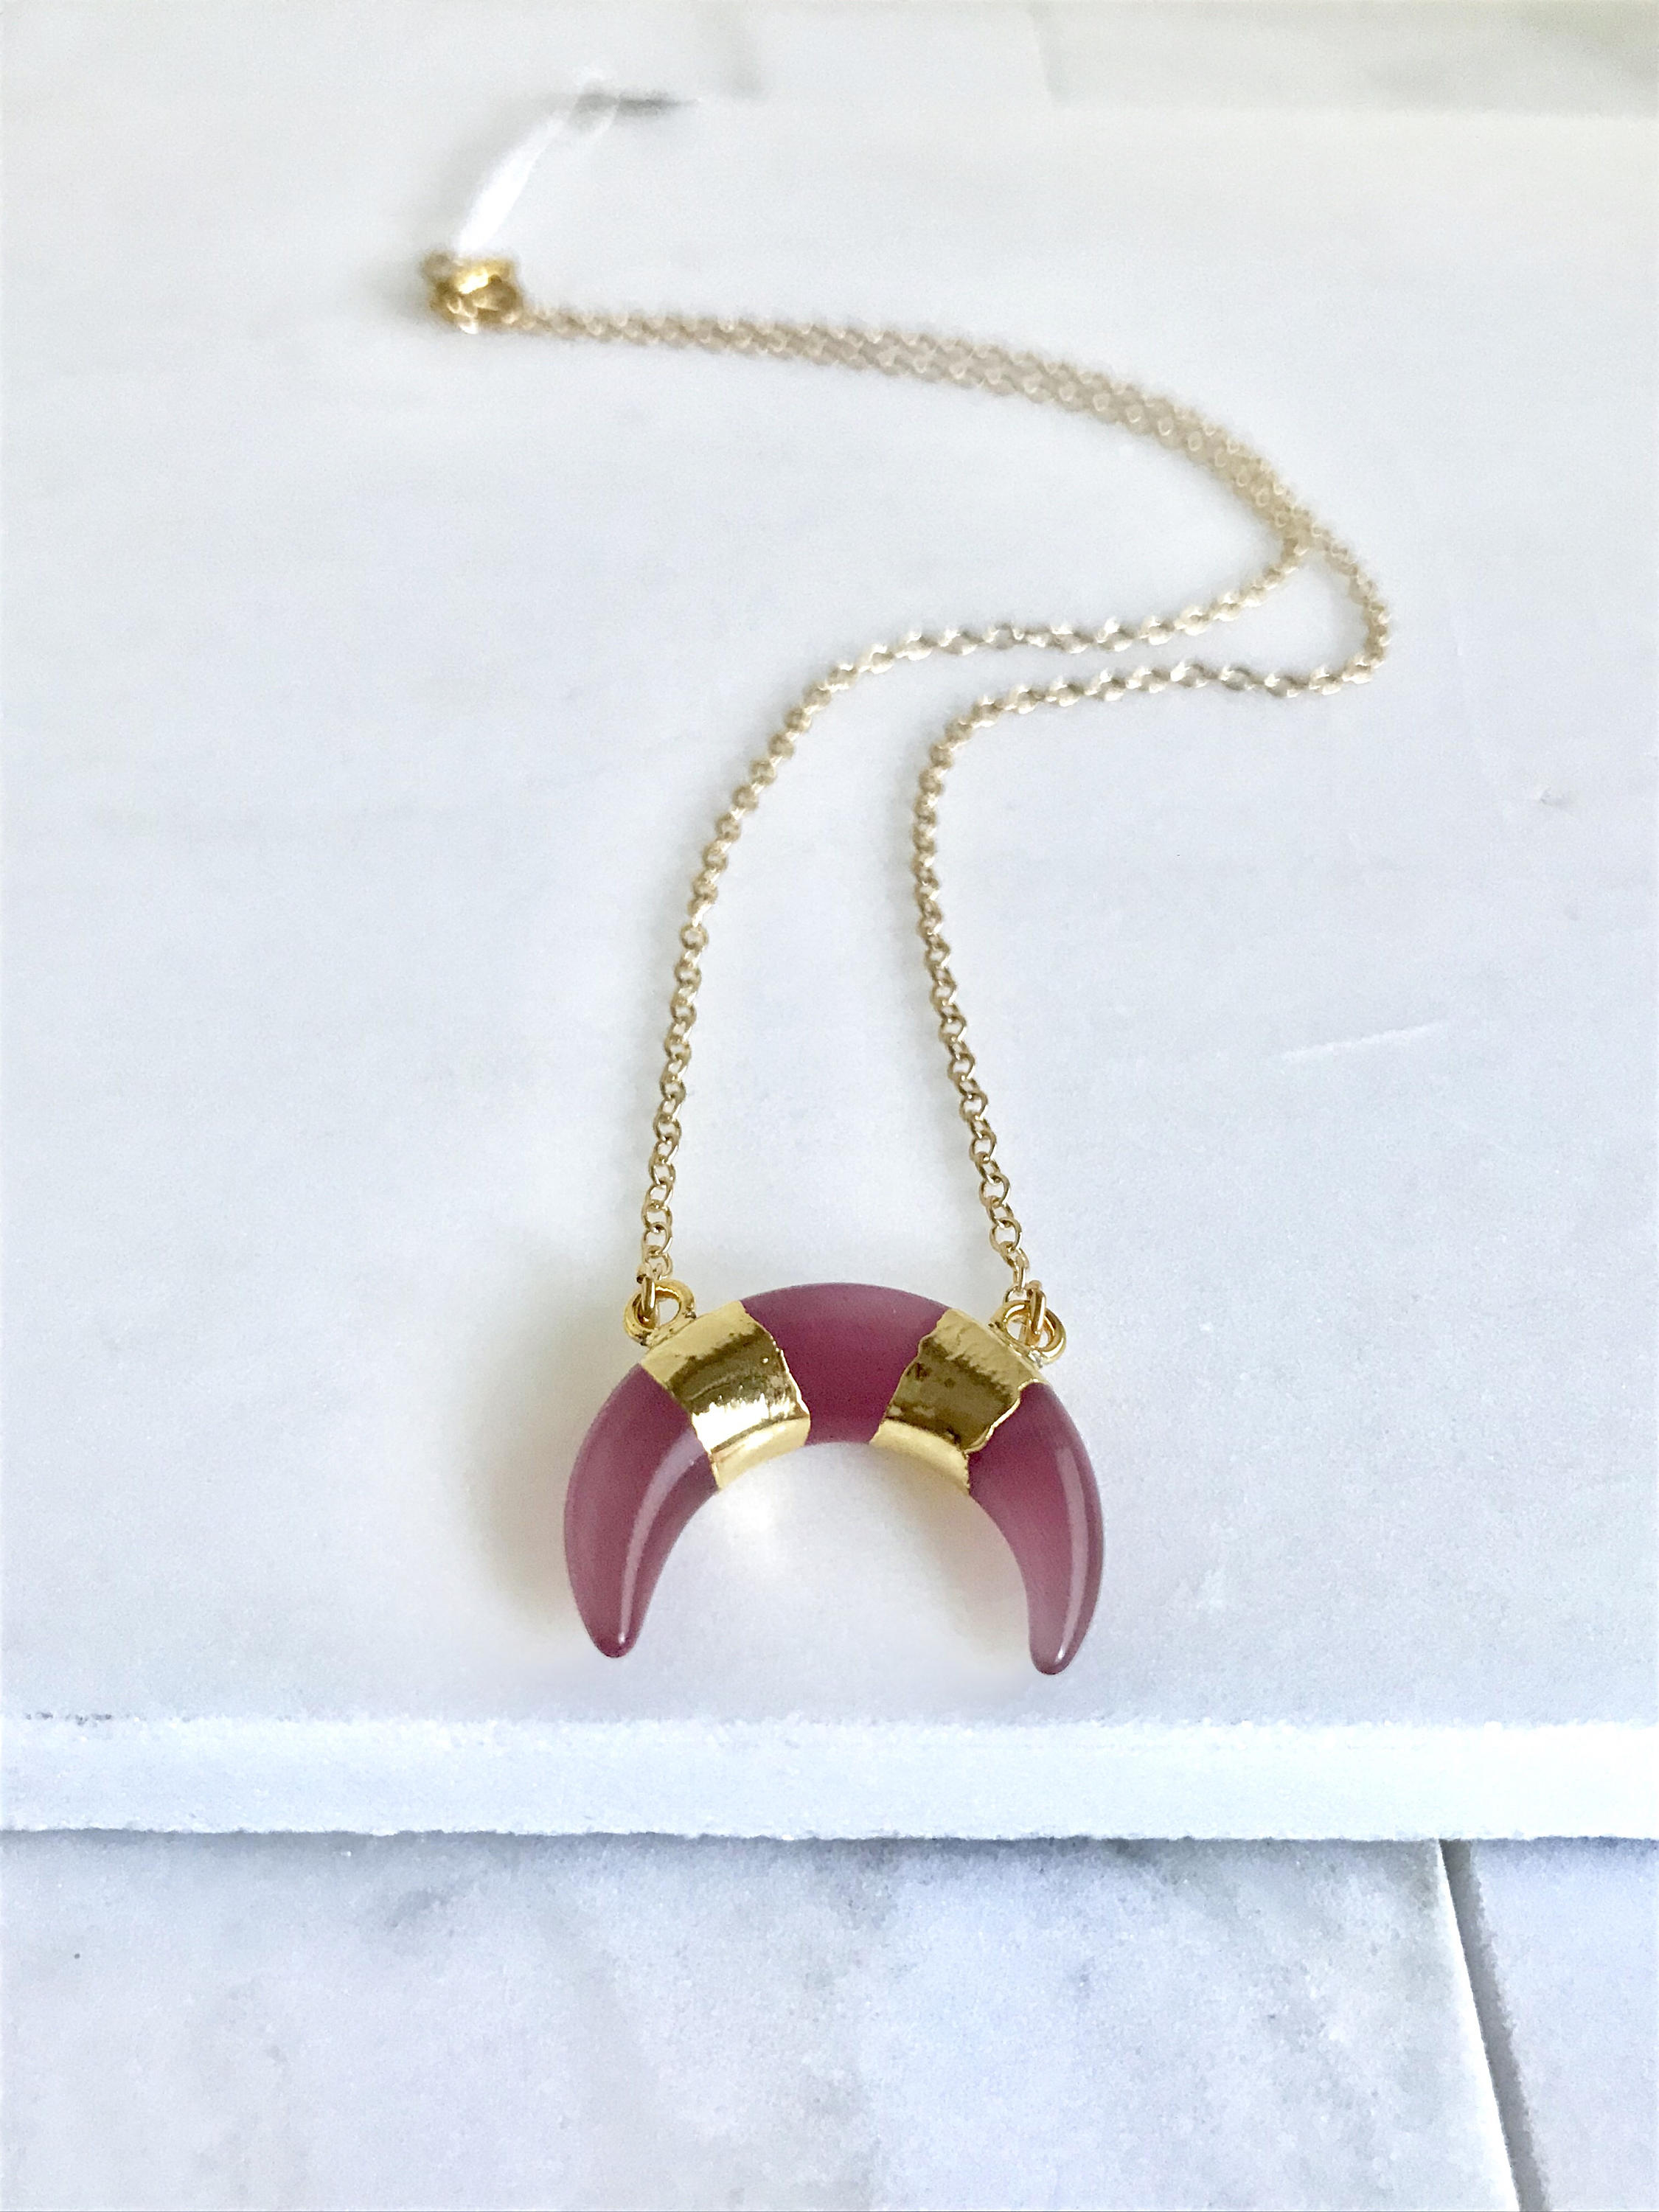 Pink and Pale Blue Crescent Moon Pendant Necklace in Gold. Gemstone Crescent Necklace.